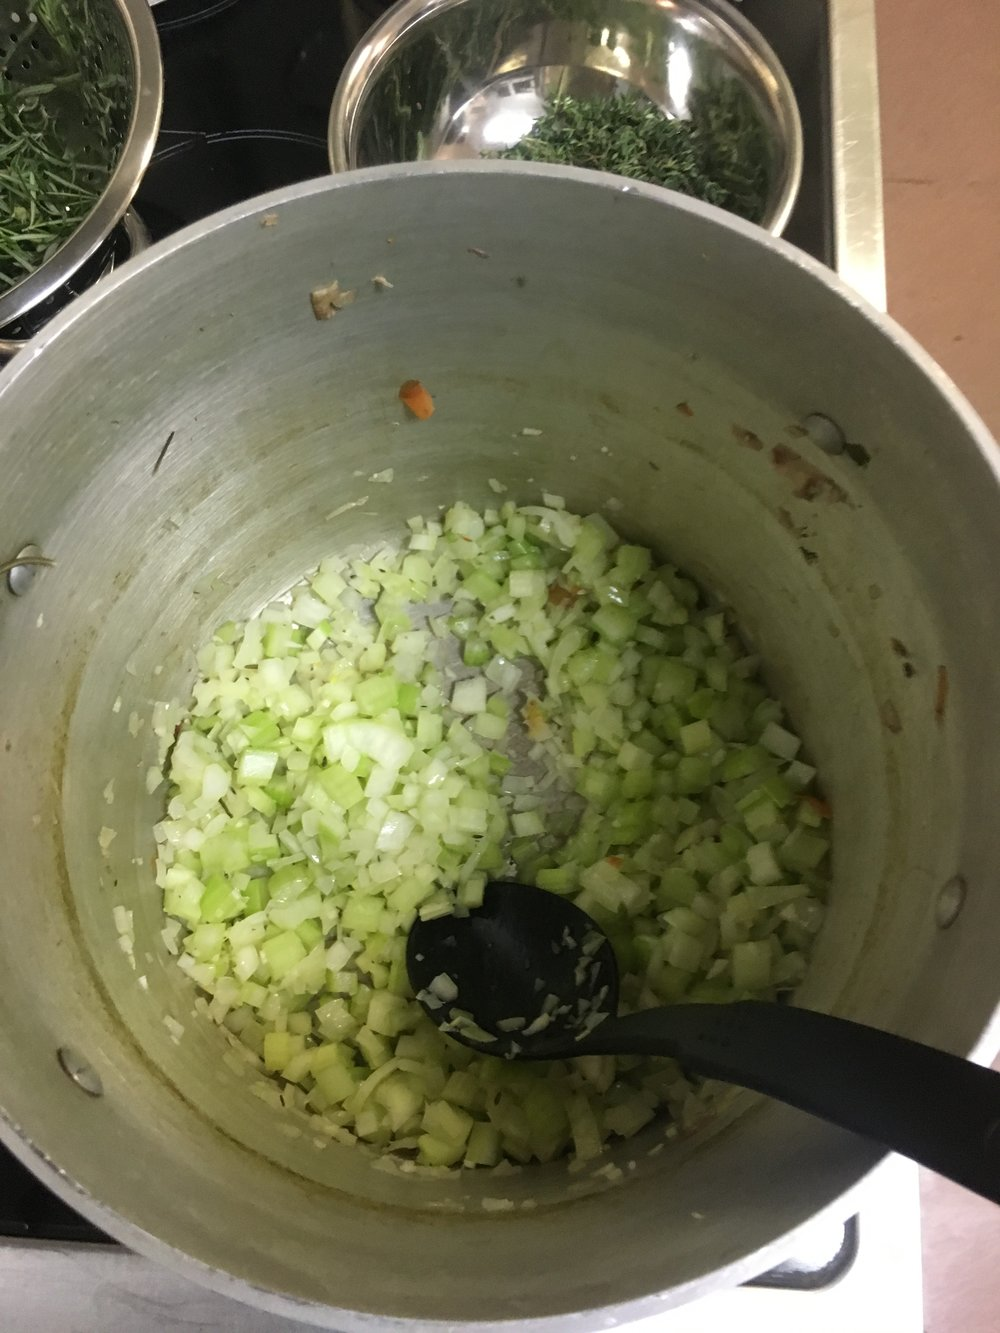 Onions, garlic and celery frying to become the base of the soup.